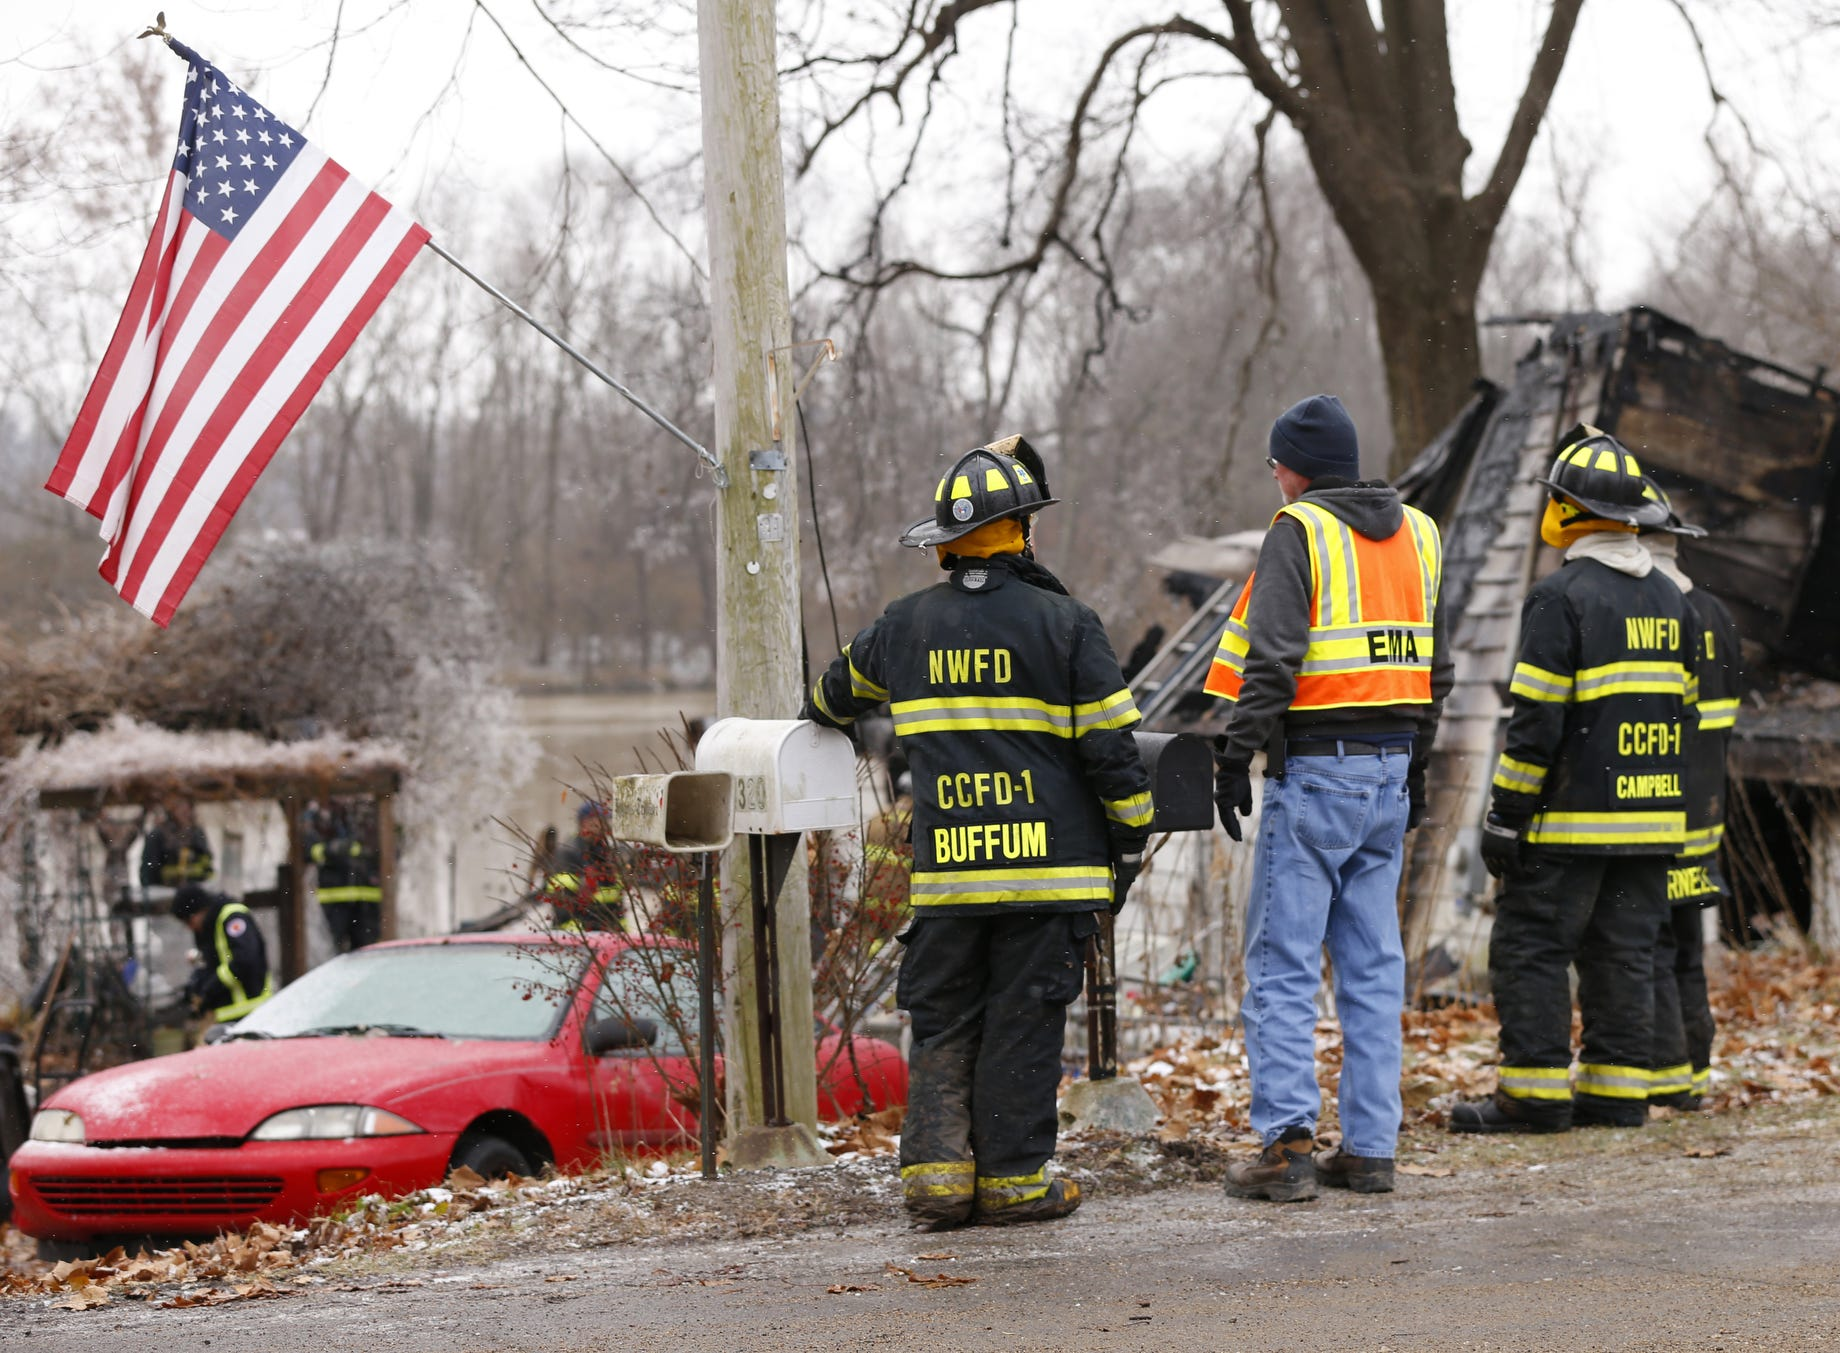 Firefighters remain on the scene following an early morning house fire that claimed several lives Wednesday, November 28, 2018, at 4300 Pottawatomie Road in Logansport.